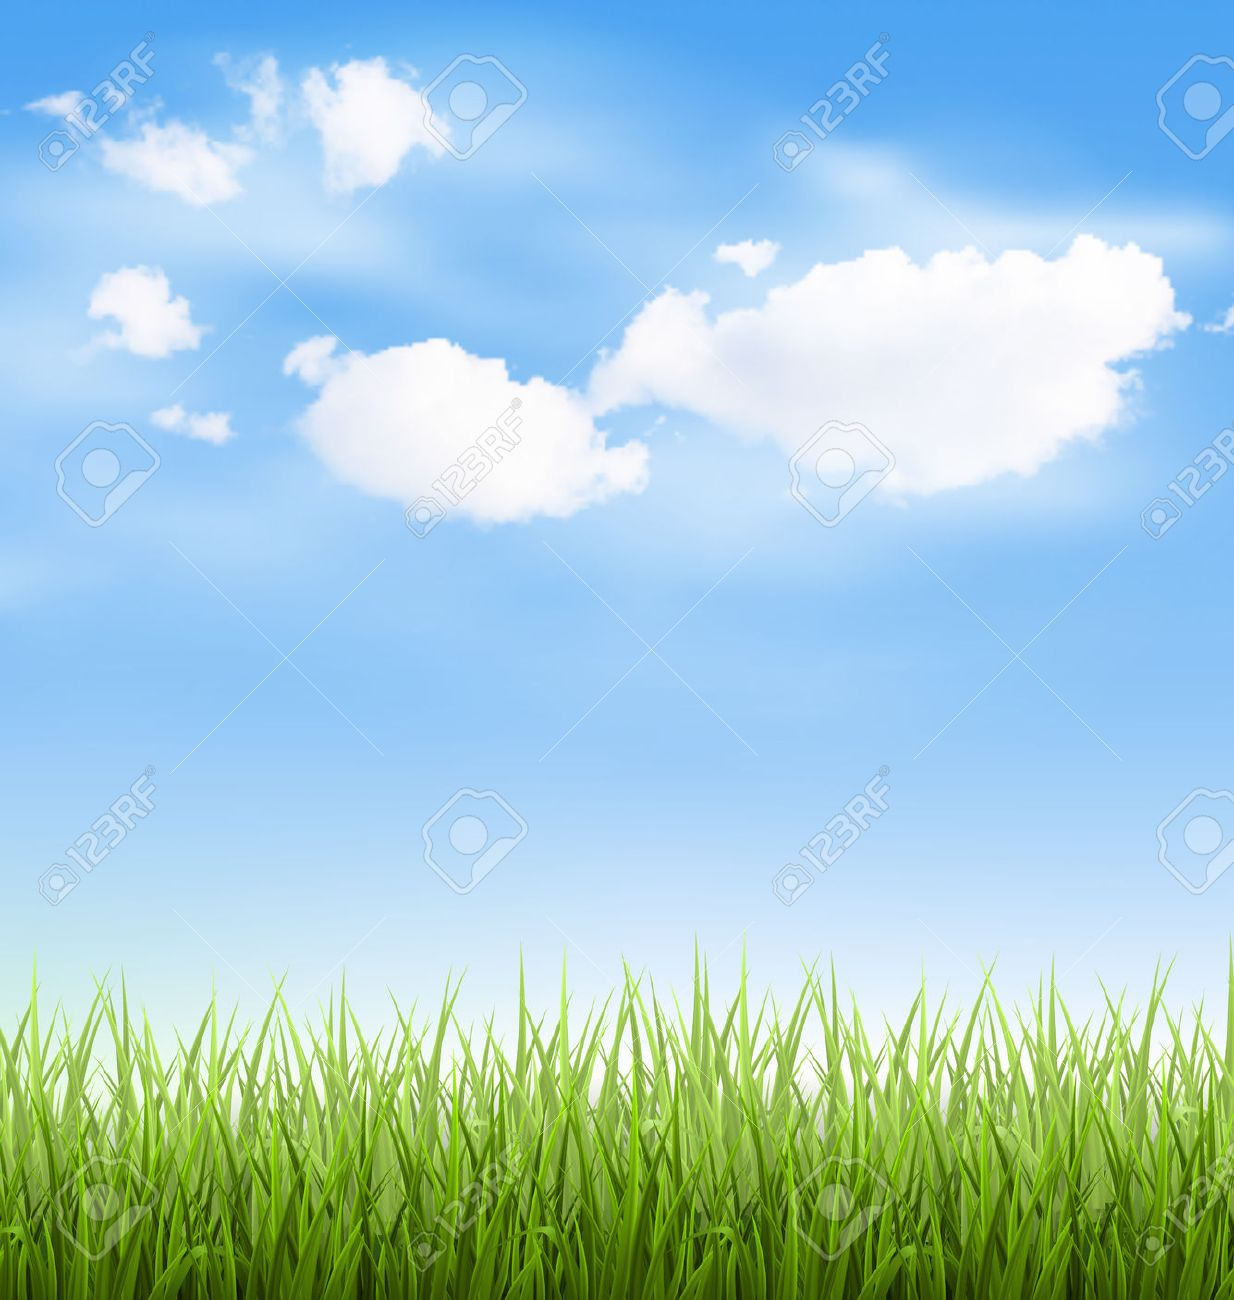 Green grass lawn with clouds on blue sky - 42139658